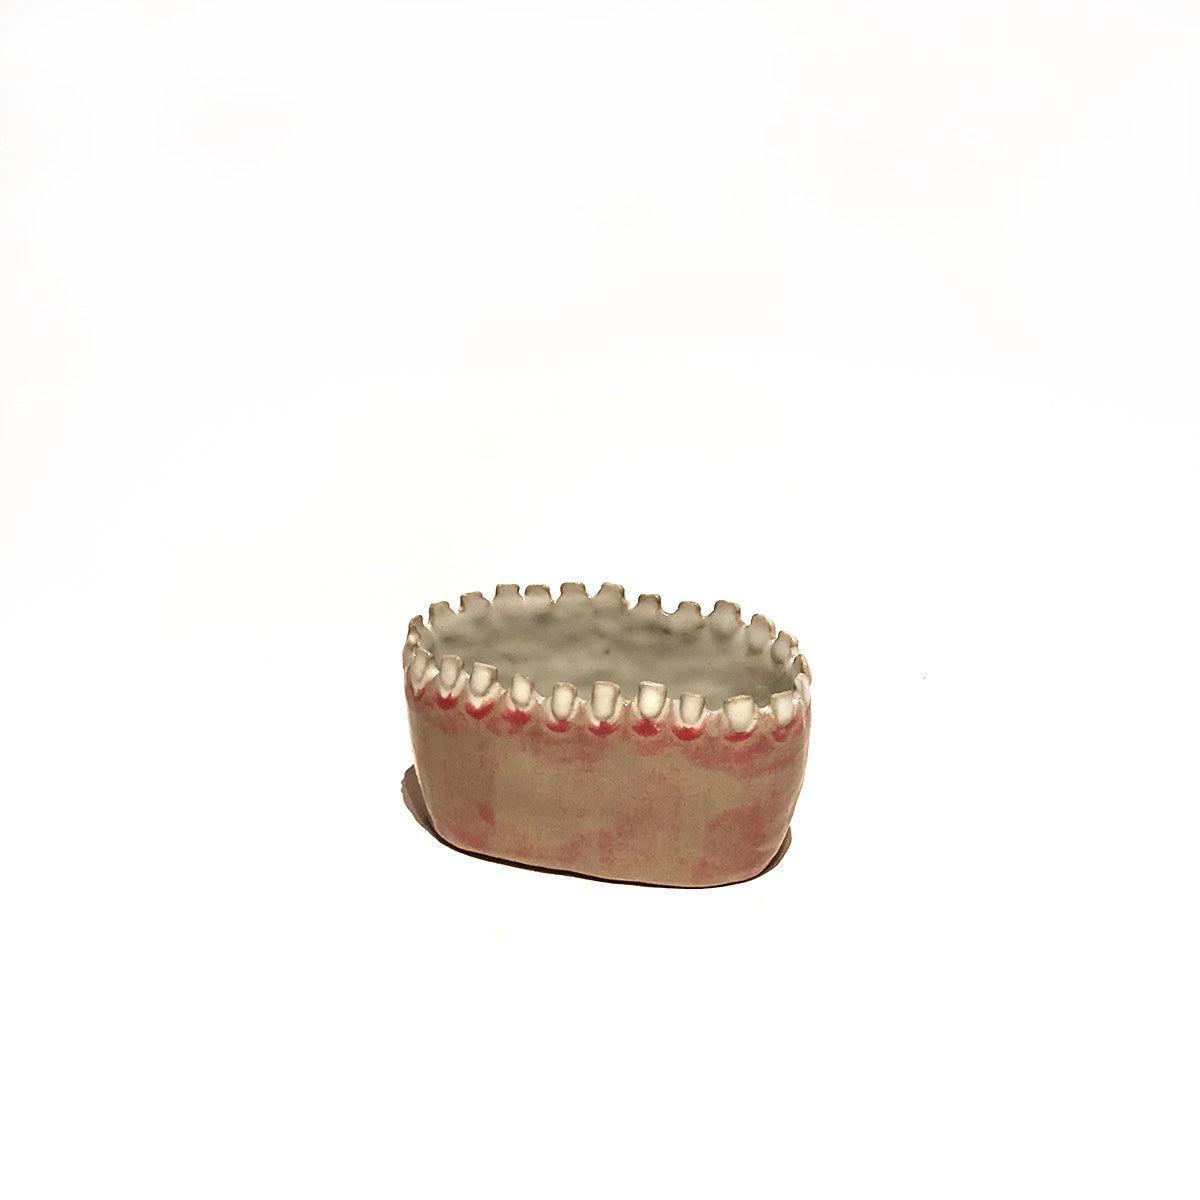 Smaller Ceramic Teeth Planter